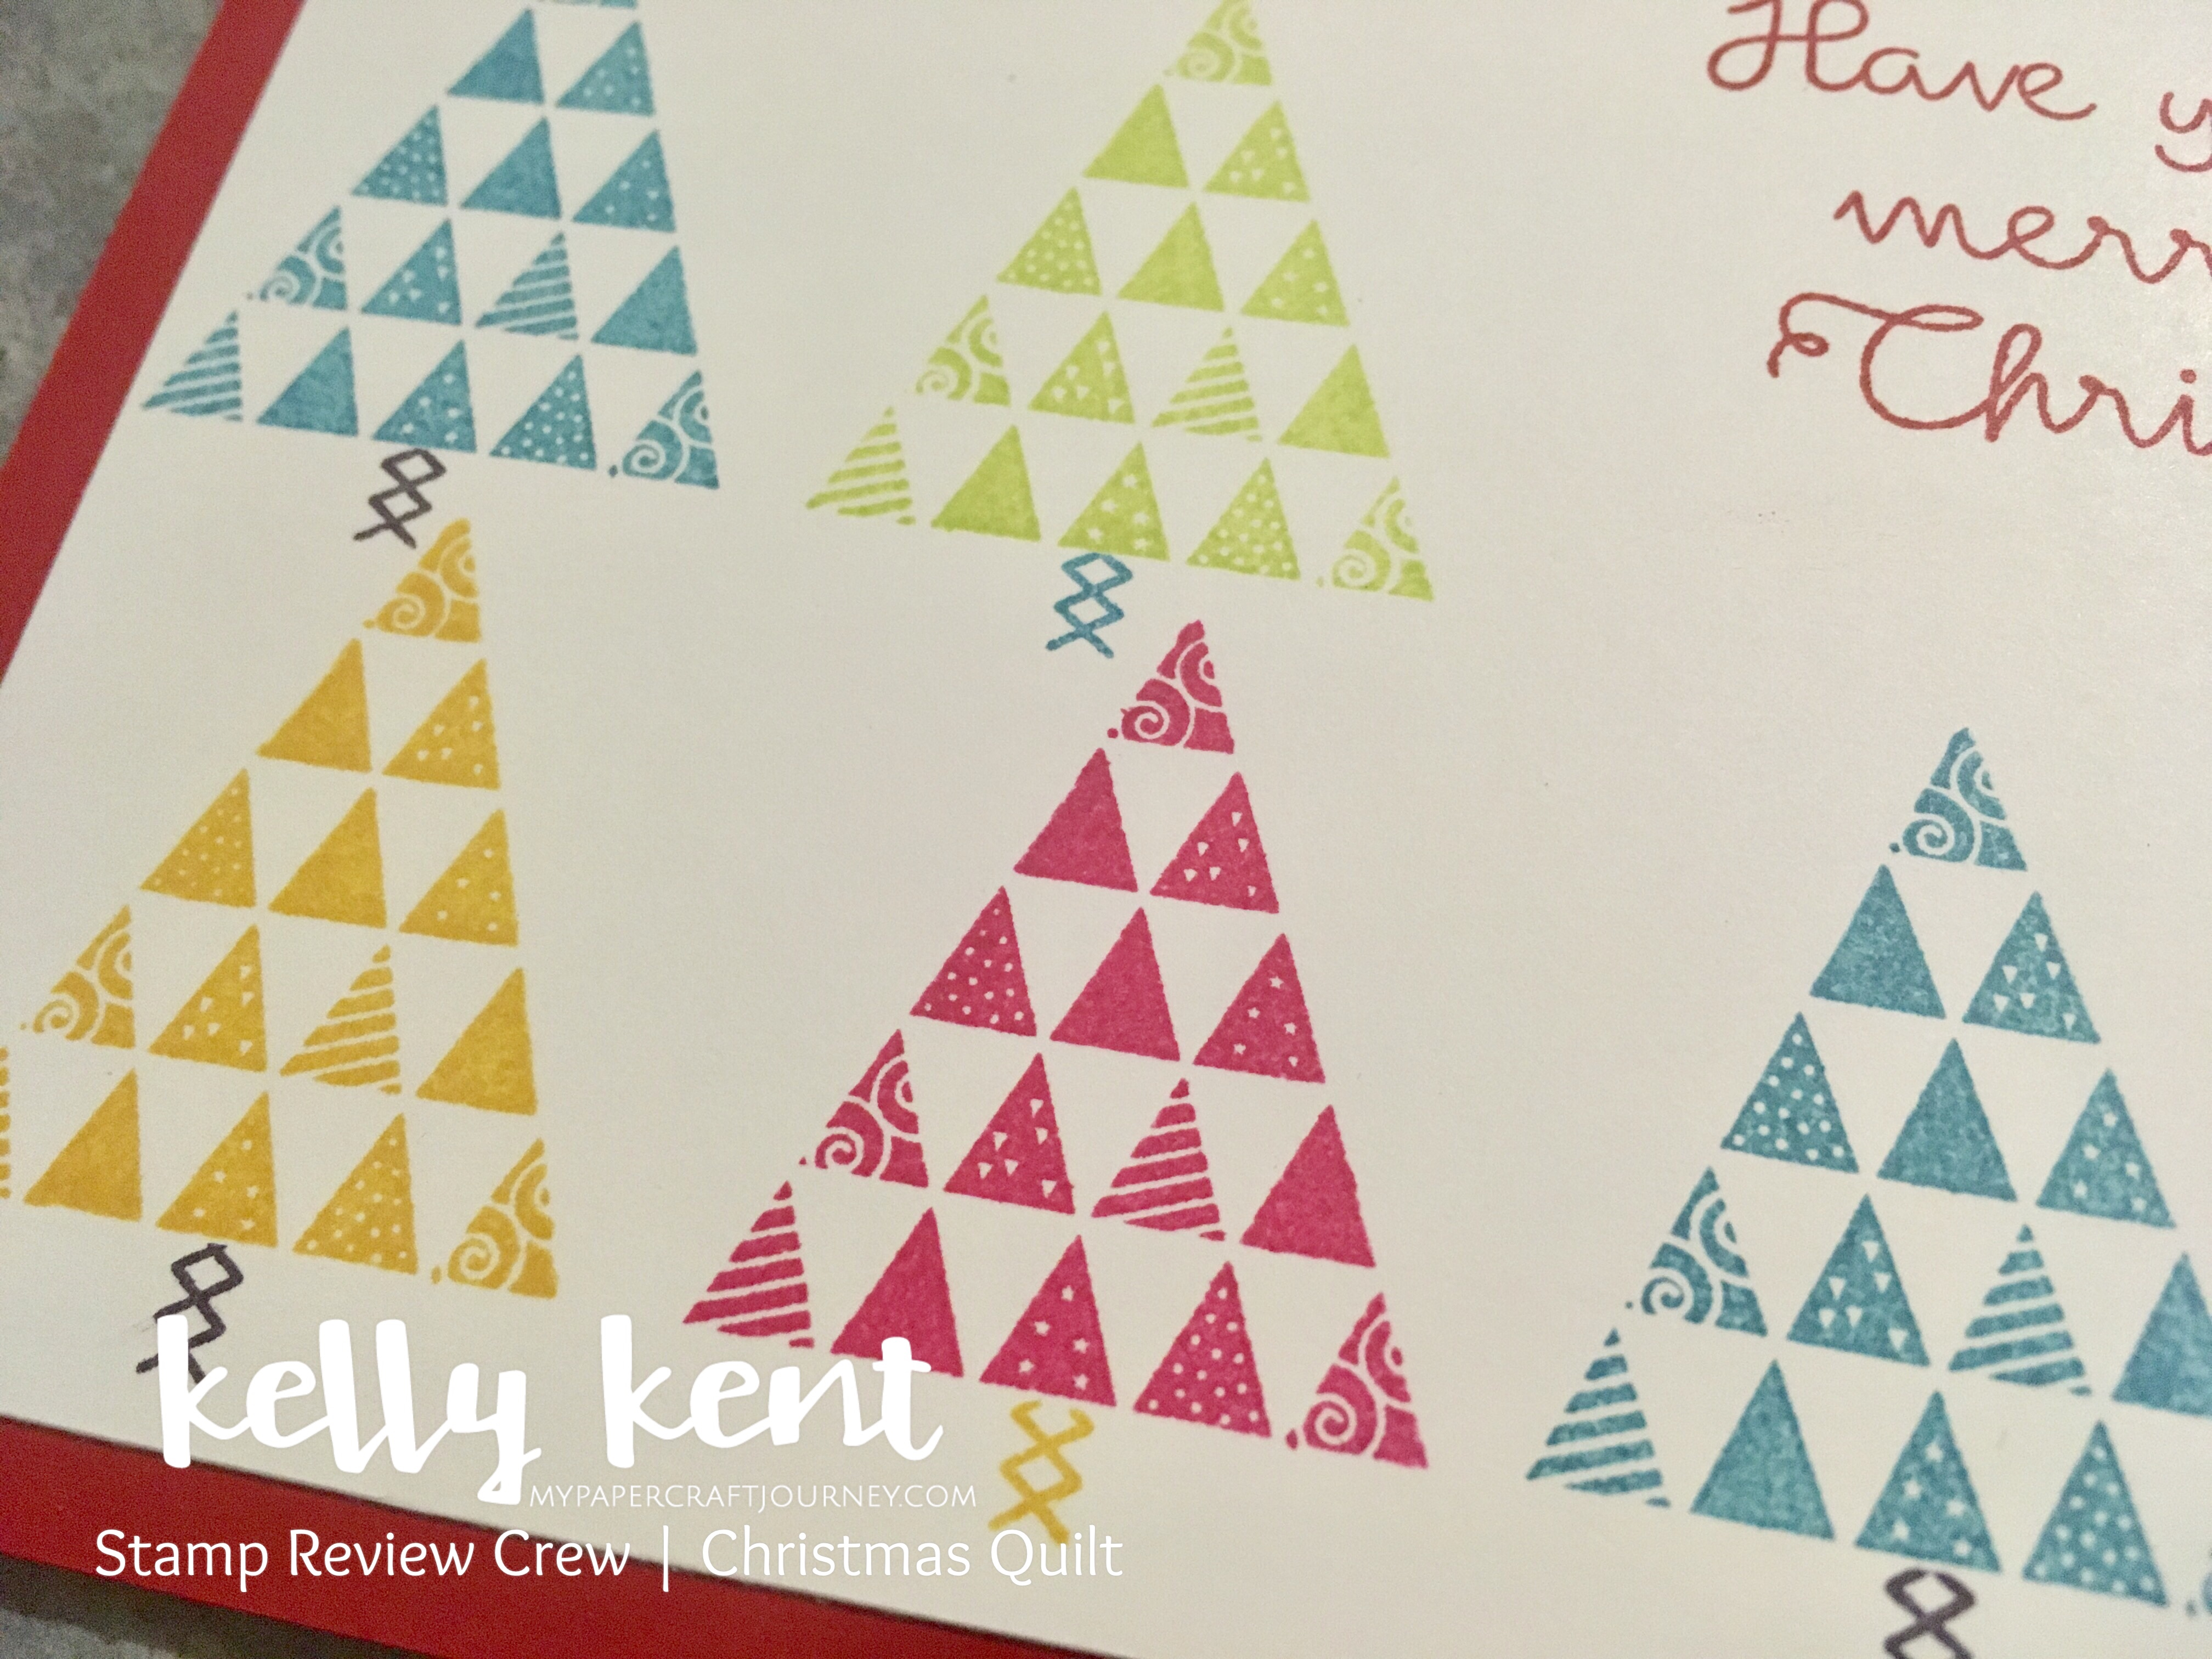 Stamp Review Crew Christmas Quilt | kelly kent